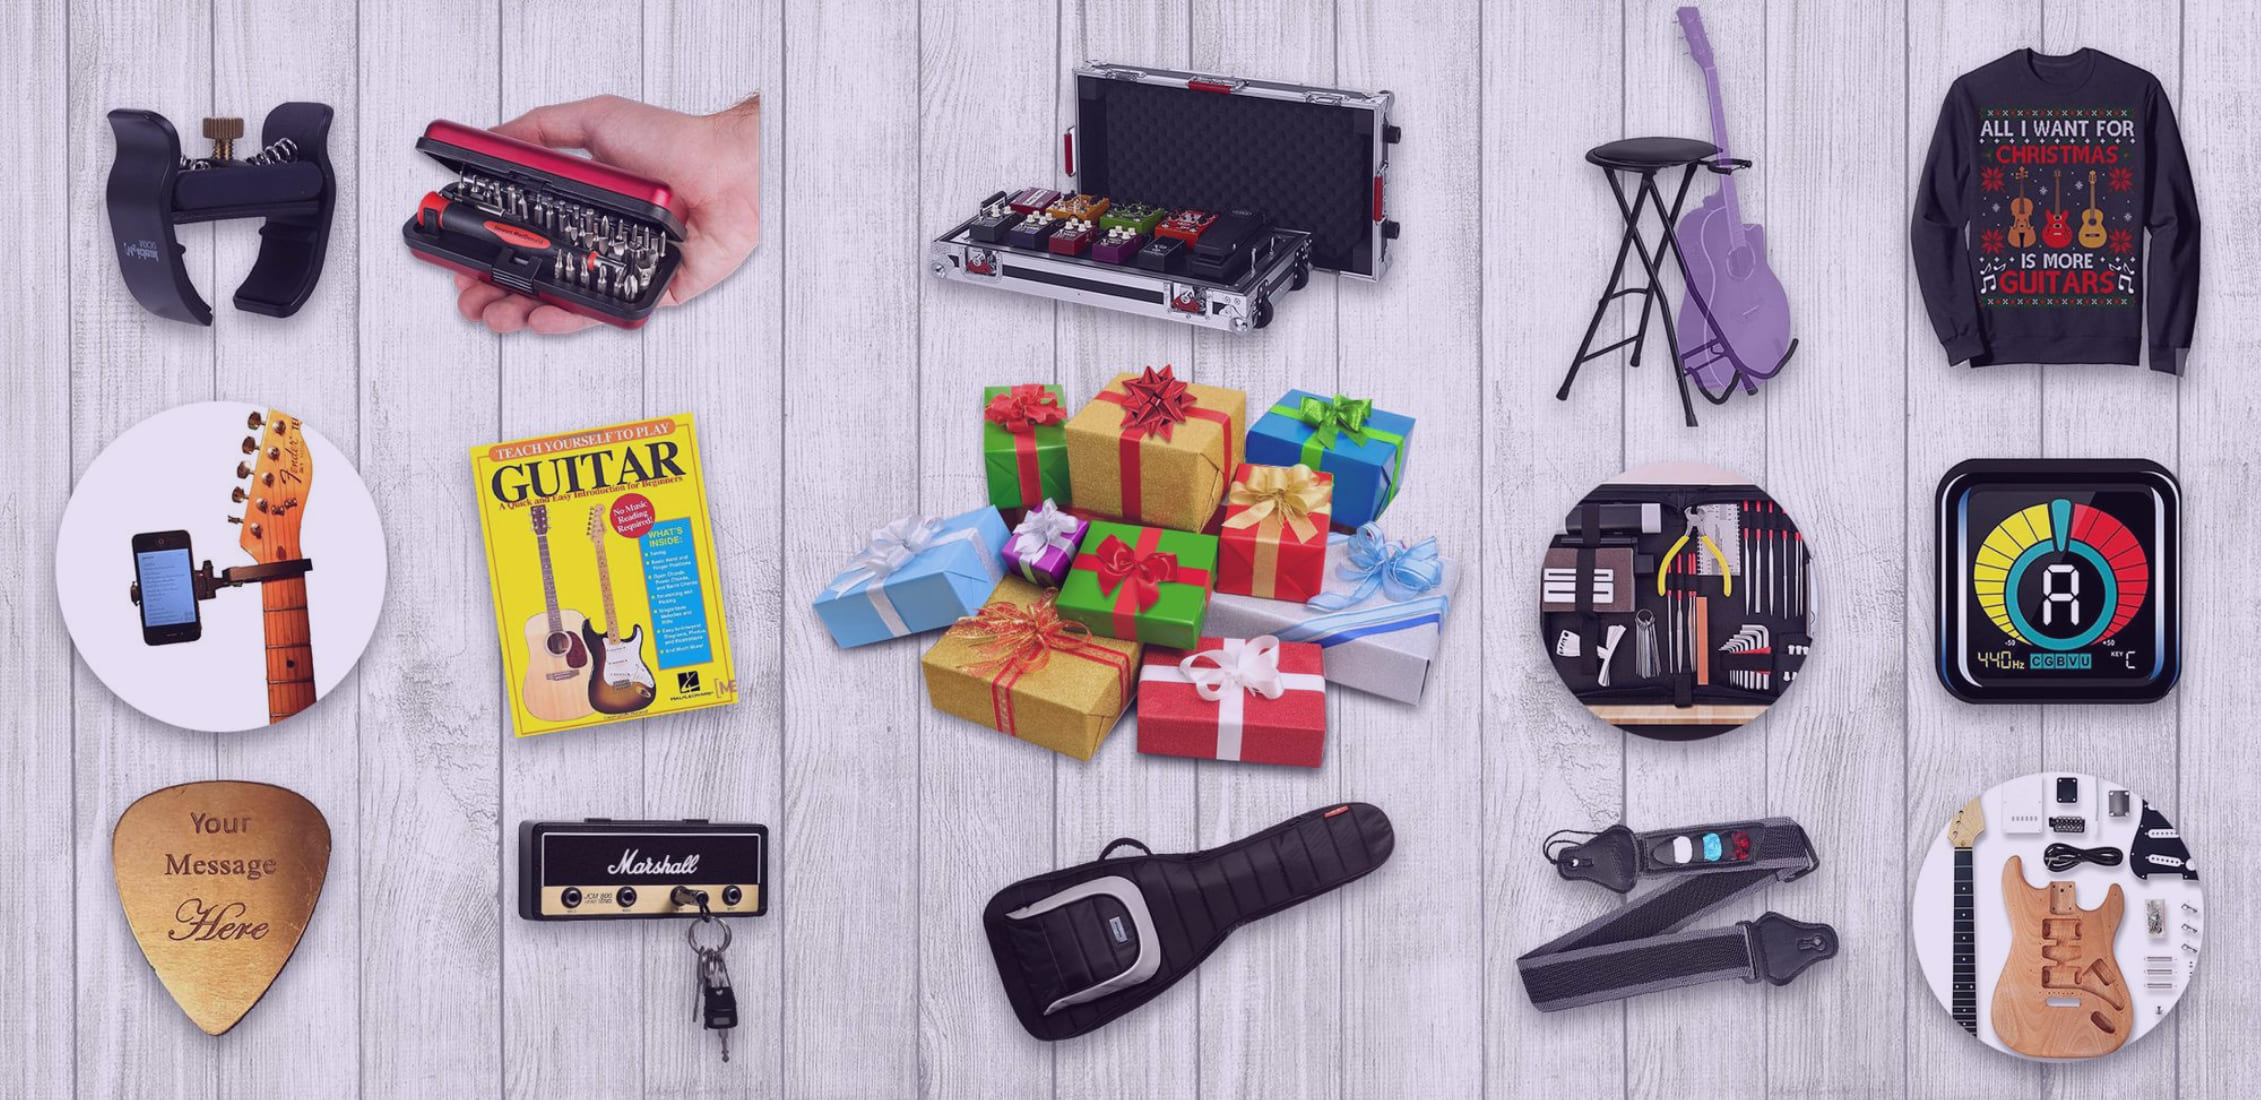 An example of what cool gifts for guitar lovers can be.